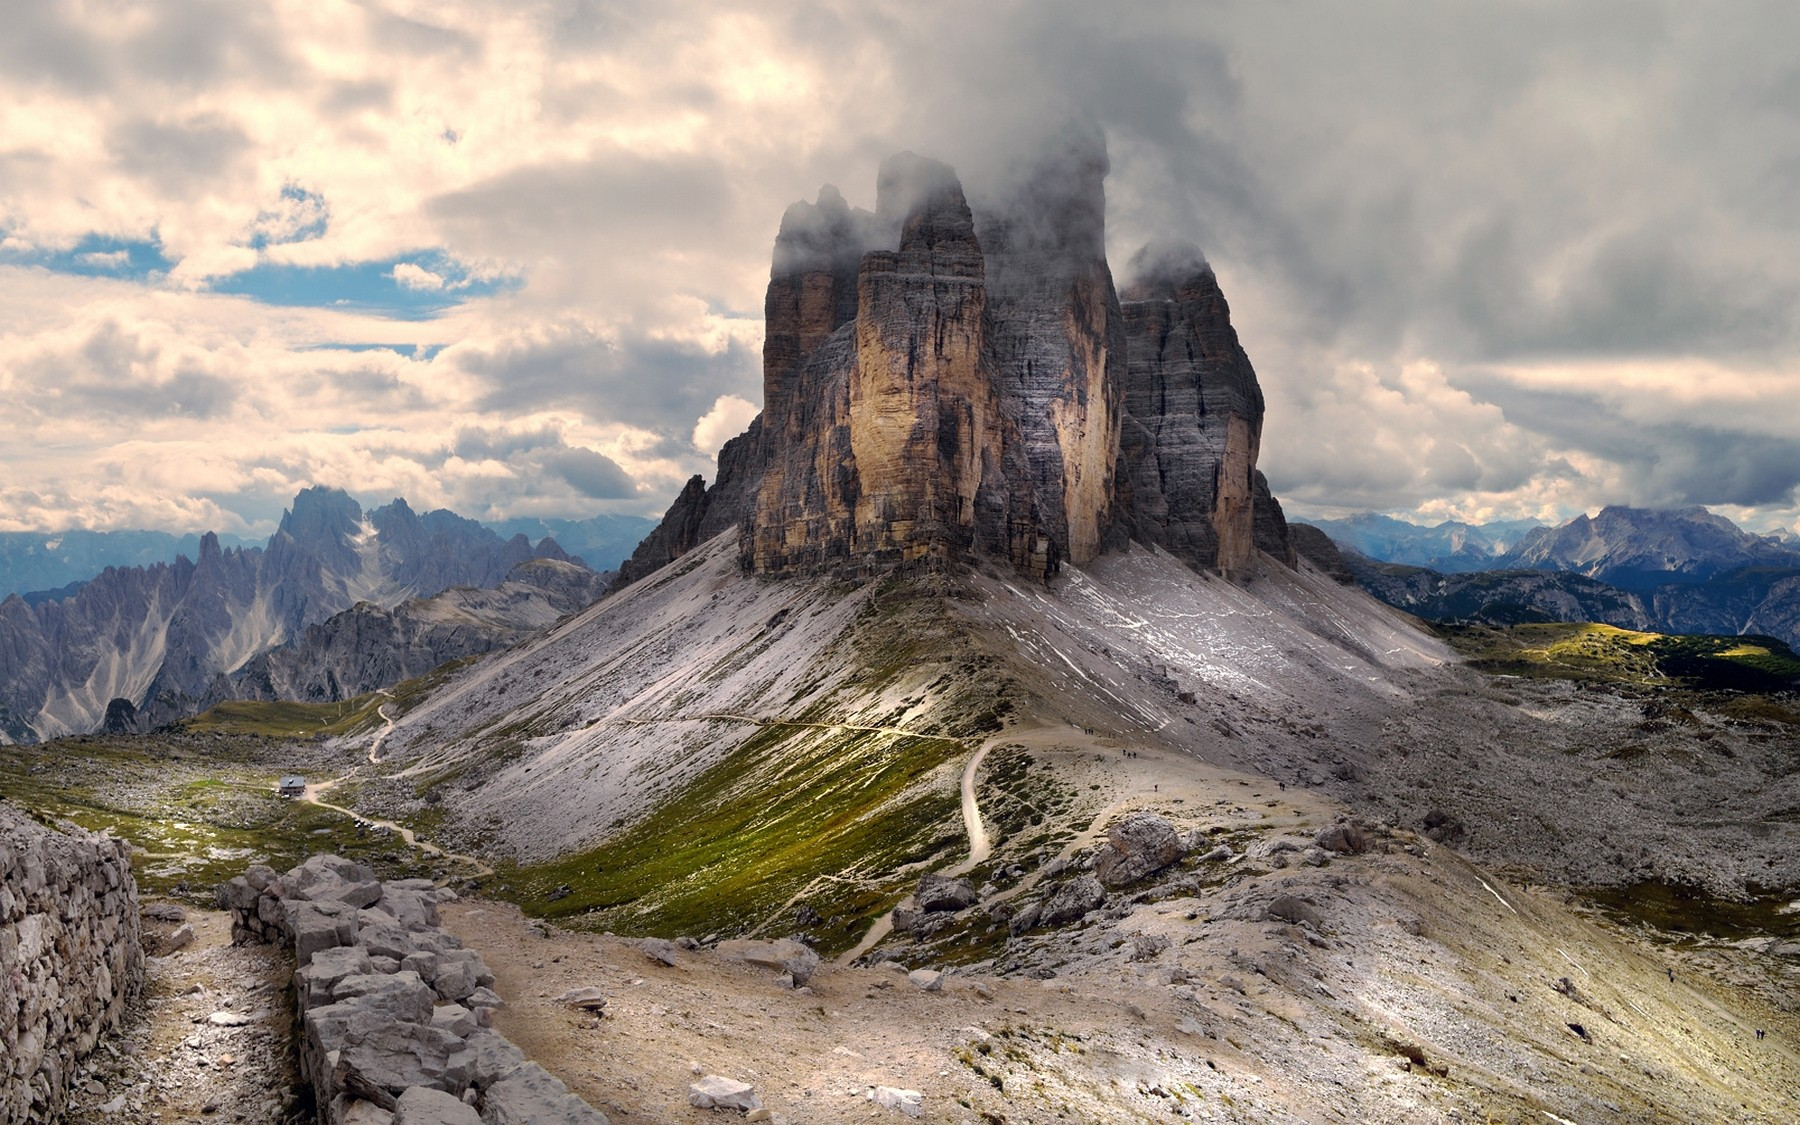 General 1800x1125 mountains summer clouds nature landscape Alps Italy path dirt road sky